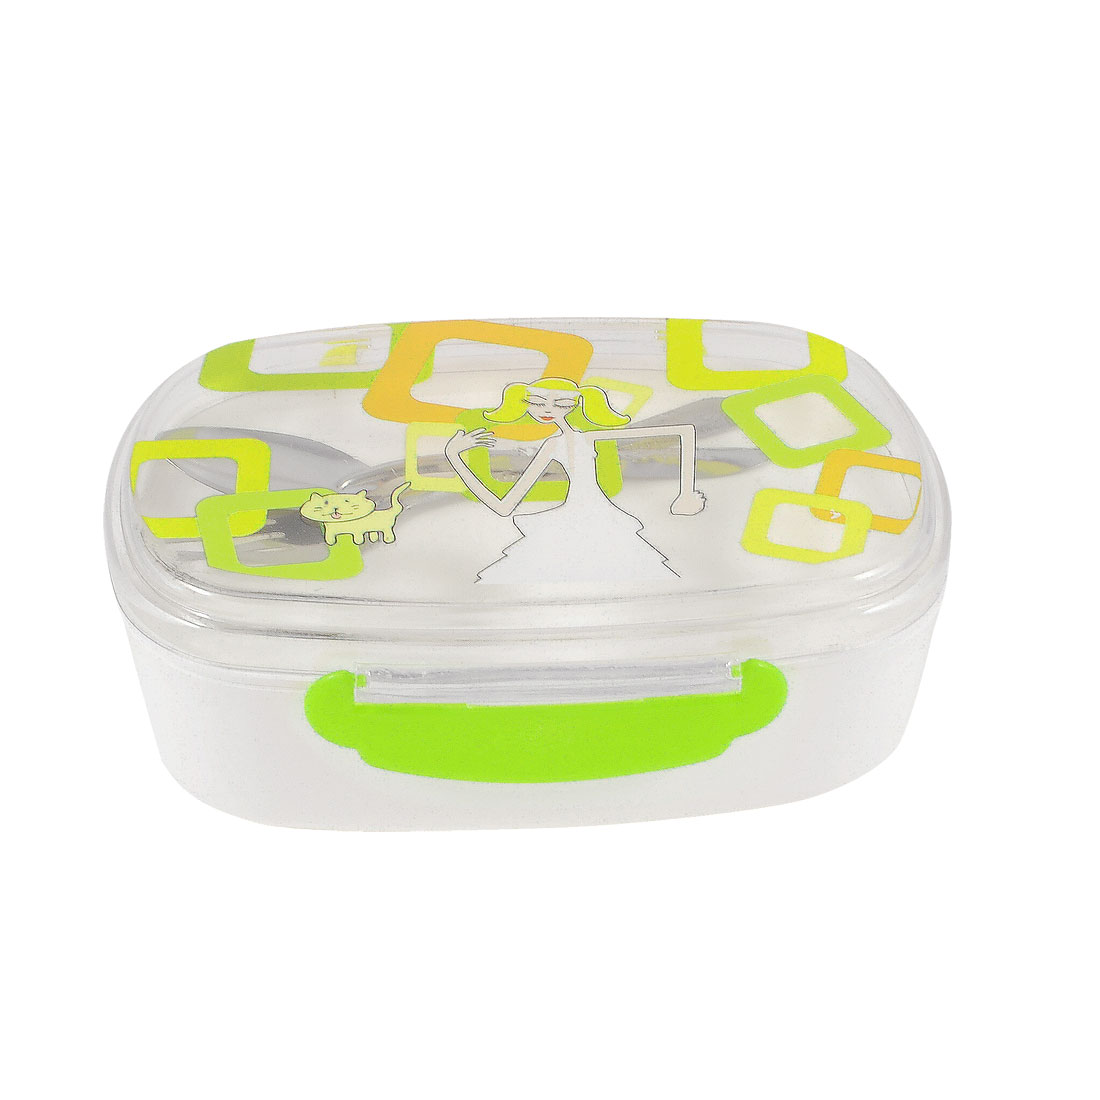 Kitchenware Green Clear Cartoon Lady Print Food Container Case Lunch Box